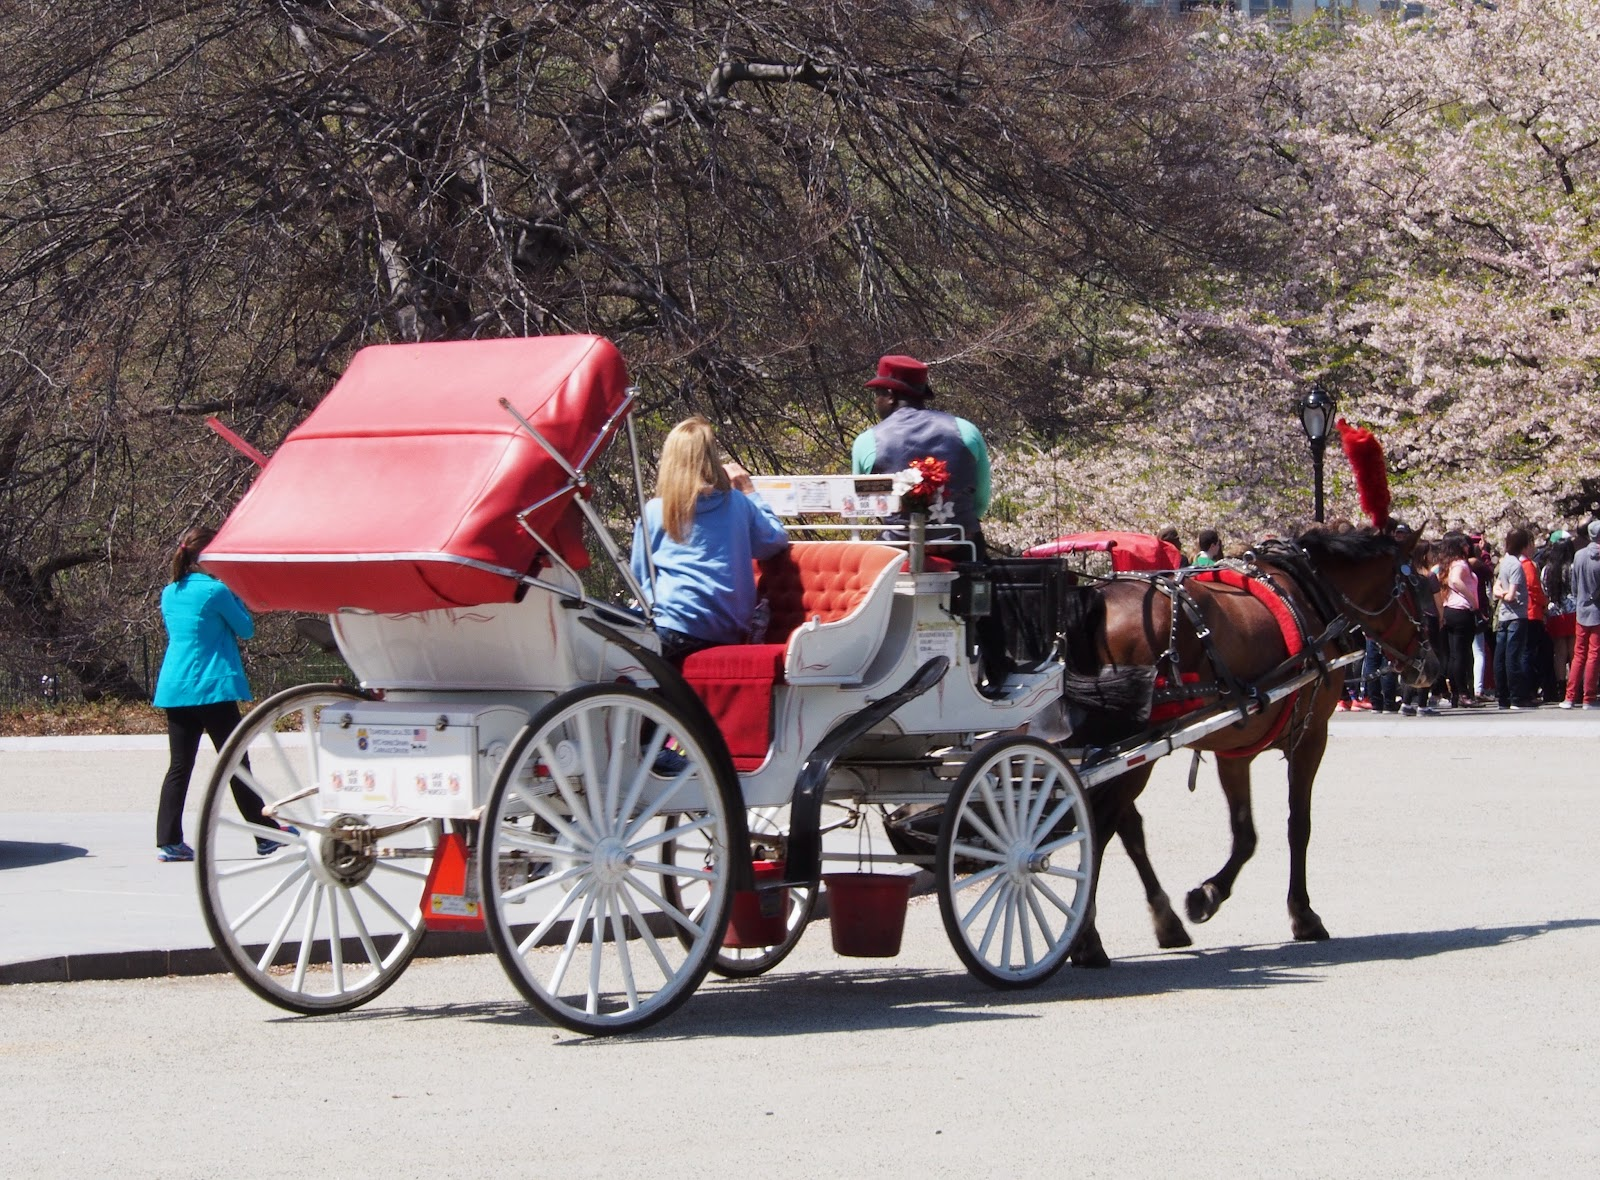 Carriage Rides. Cherry Blossoms. #frombehind #carriagerides #cherryblossoms #nyc 2014